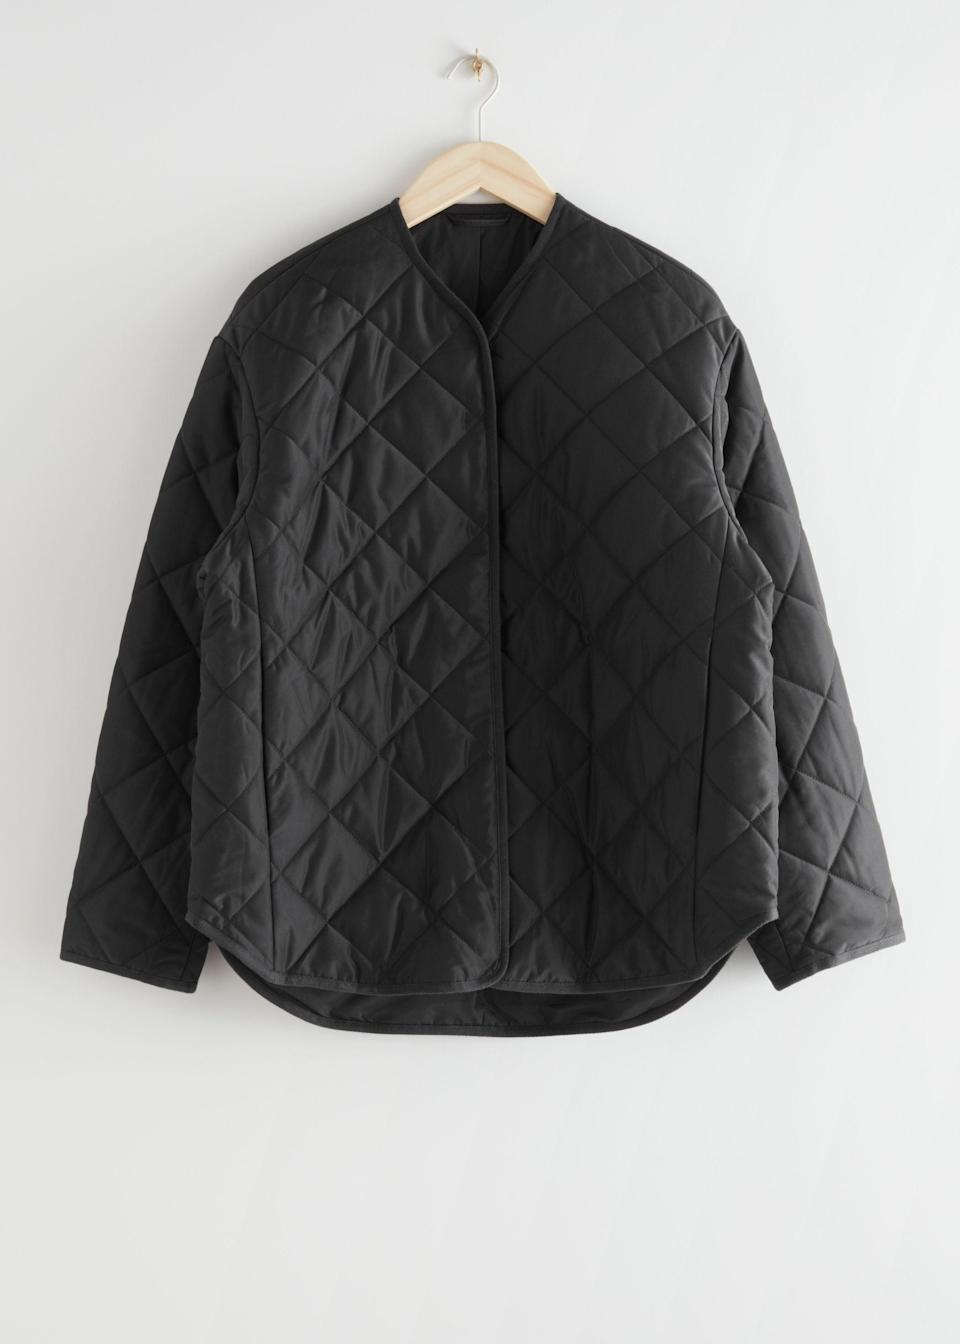 "<br><br><strong>& Other Stories</strong> Oversized Quilted Jacket, $, available at <a href=""https://www.stories.com/en_gbp/clothing/jackets-coats/jackets/product.oversized-quilted-jacket-black.0877992001.html?gclid=Cj0KCQiA4feBBhC9ARIsABp_nbWjUtBVInujBmJmNONeYlItZwnEMsBxXHEtU0Wt5IhVXeEME1tk6CsaAkuuEALw_wcB"" rel=""nofollow noopener"" target=""_blank"" data-ylk=""slk:& Other Stories"" class=""link rapid-noclick-resp"">& Other Stories</a>"